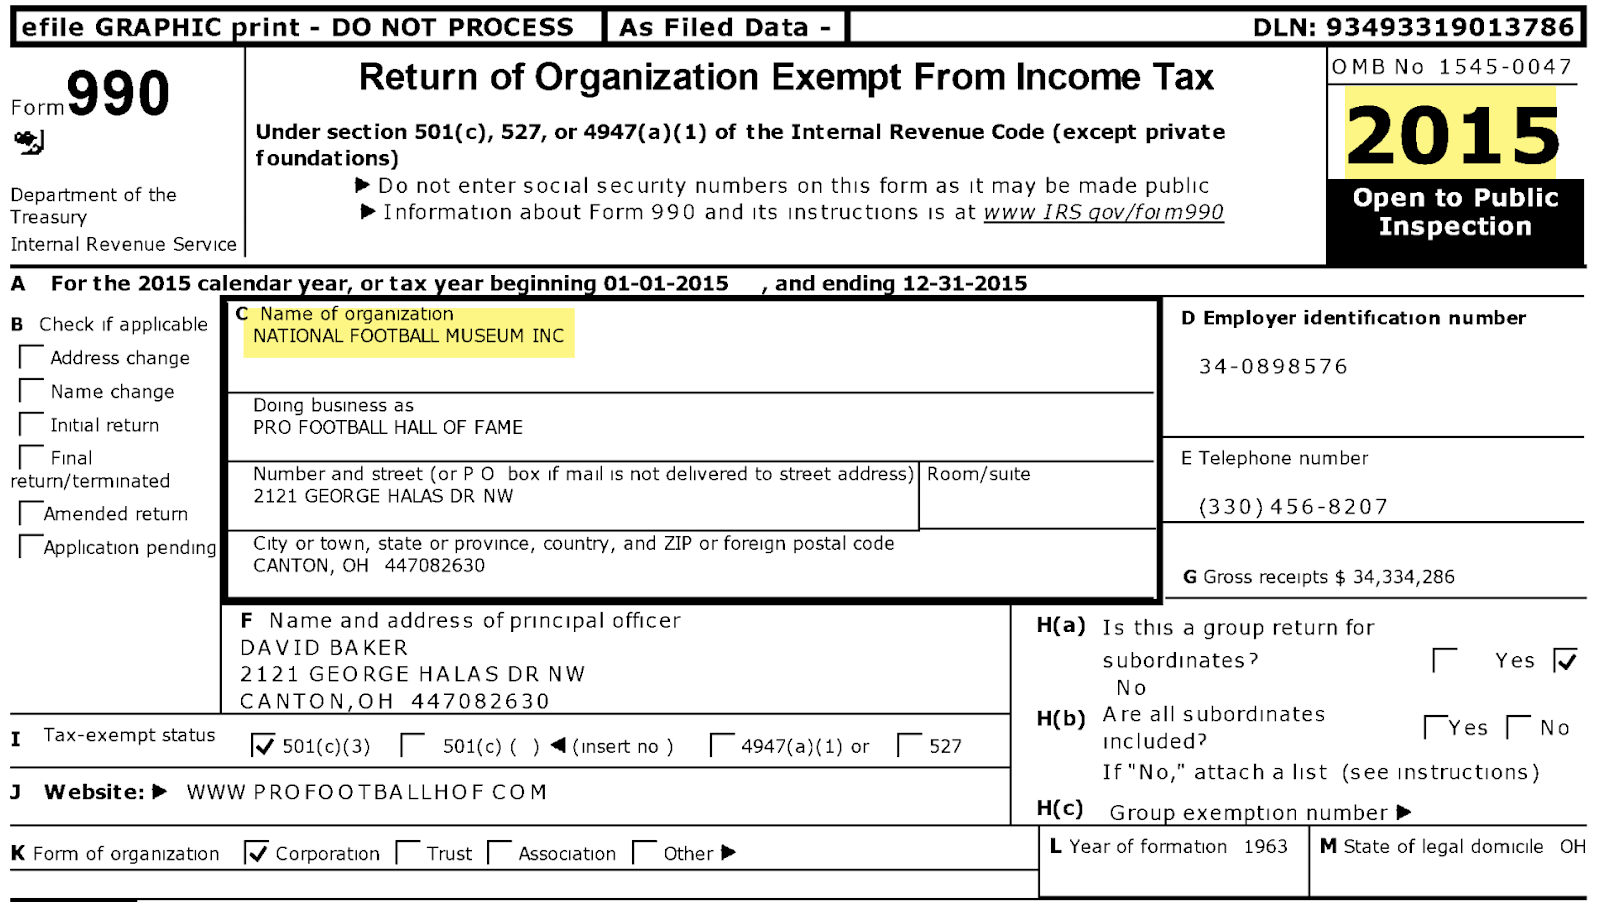 Start bloggerplugins changing the blogger title tag note the latest available to the public irs form 990 is 2015 see a complete copy of the 2015 form 990 in the appendix falaconquin